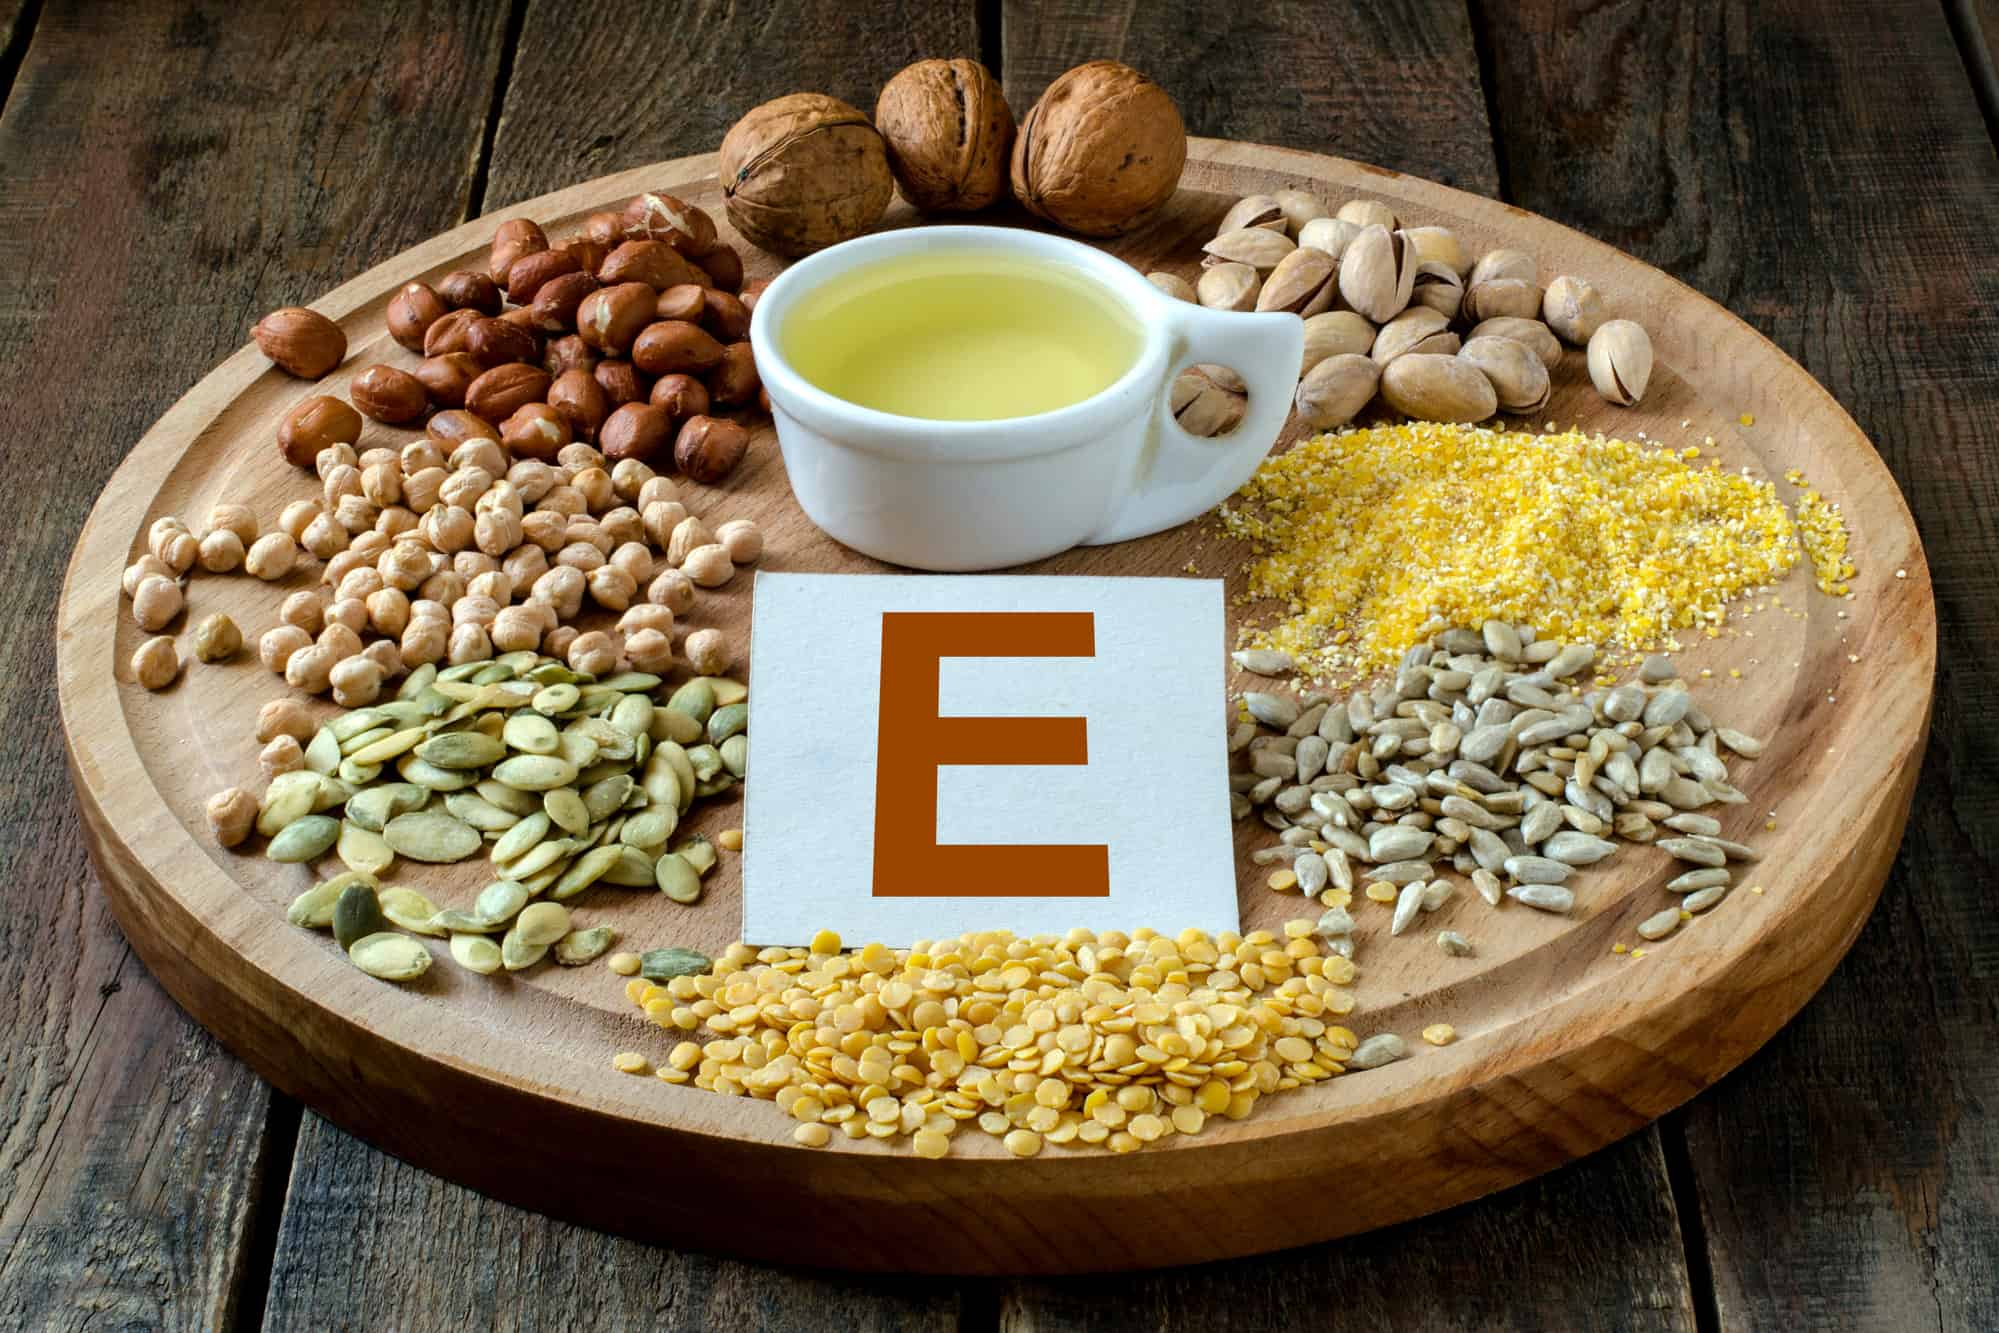 Foods containing vitamin E: oil, peas, lentils, corn, peanuts, pistachios, walnuts, sunflower seeds and pumpkin